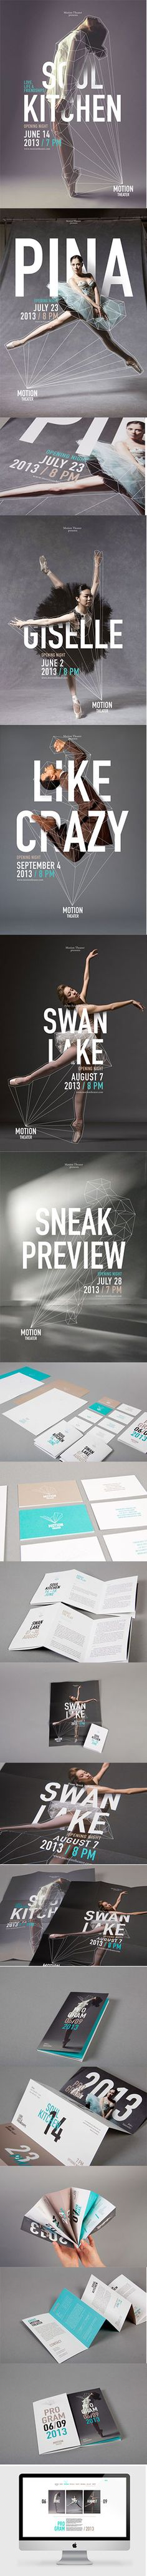 Motion Theater promotion design: flyer, Poster, Homepage | typography / graphic design: Caroline Grohs @ behance | Más